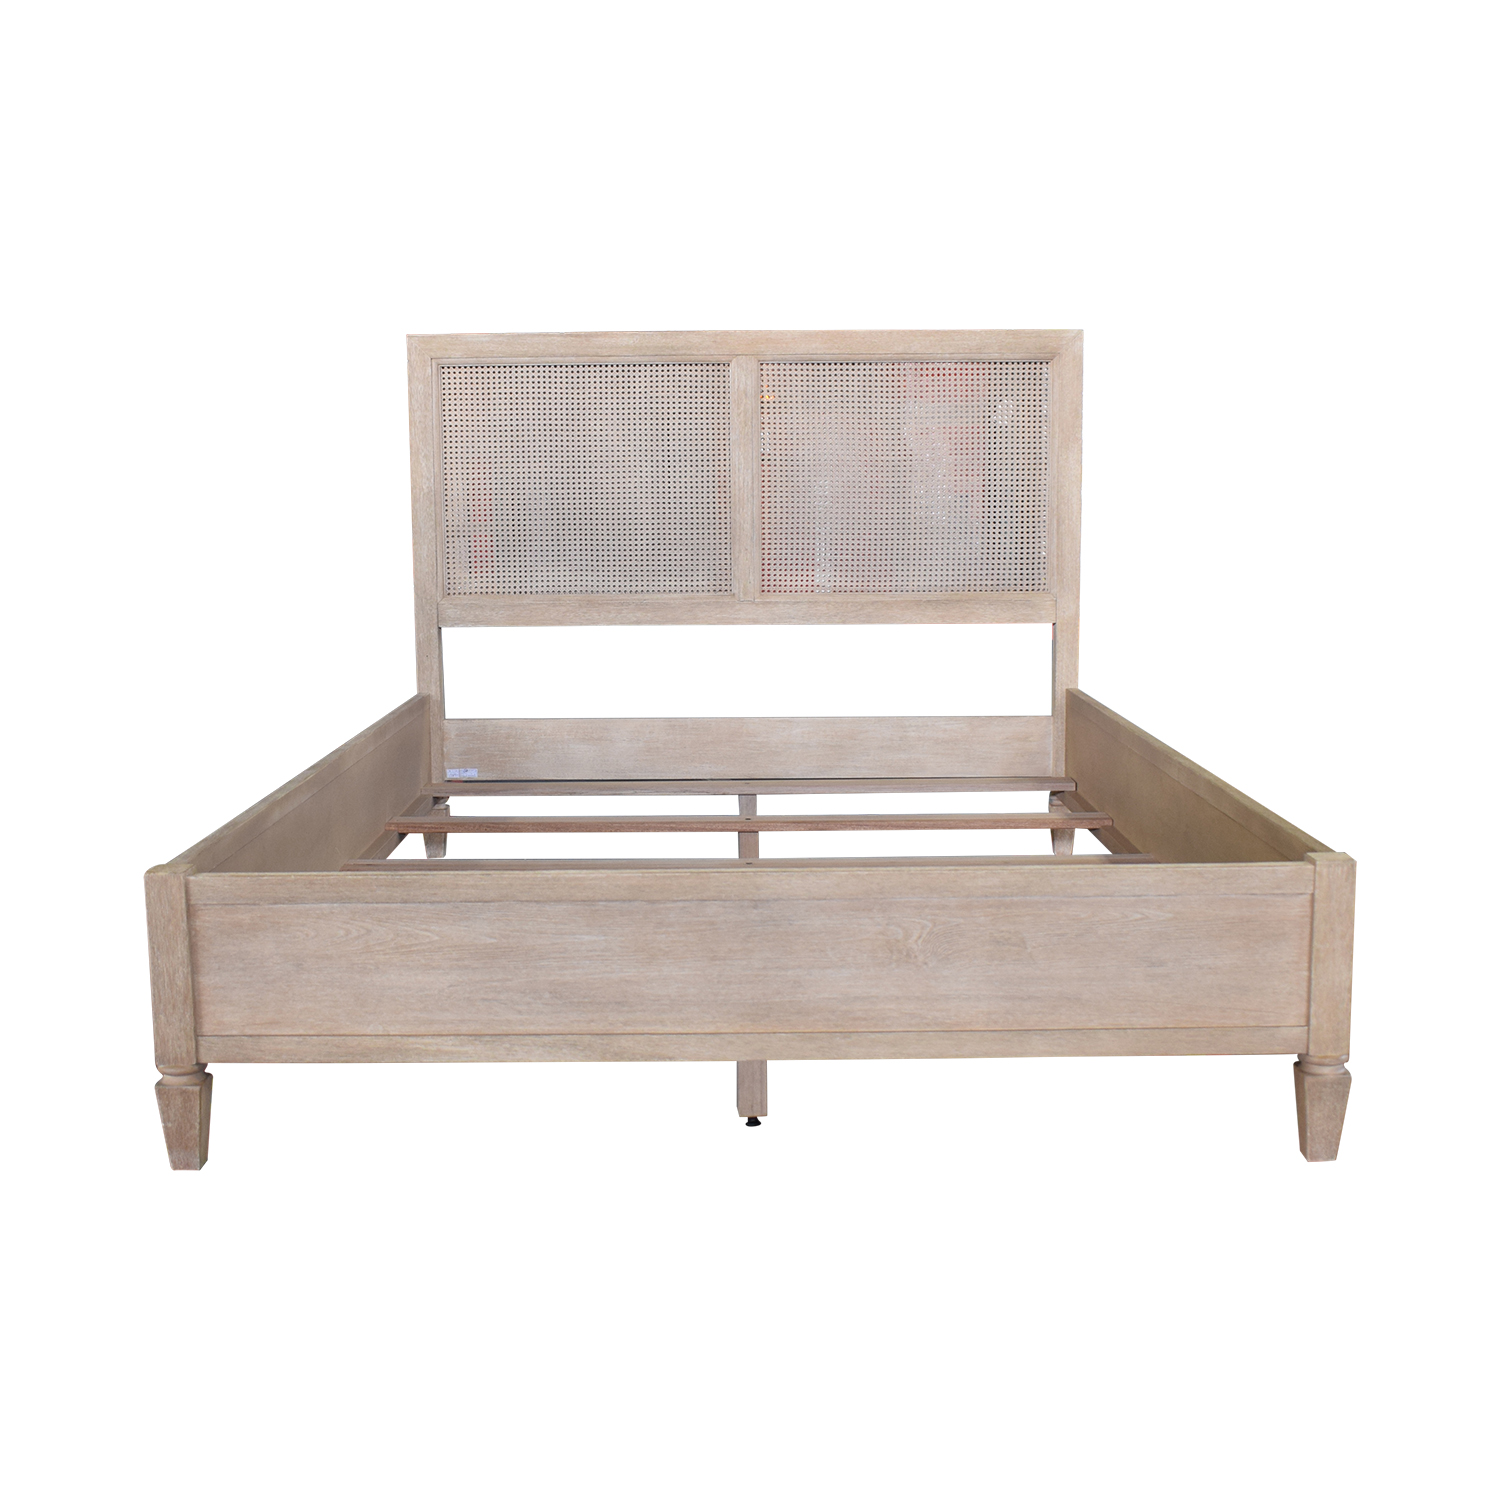 Pottery Barn Sausalito Queen Bed sale